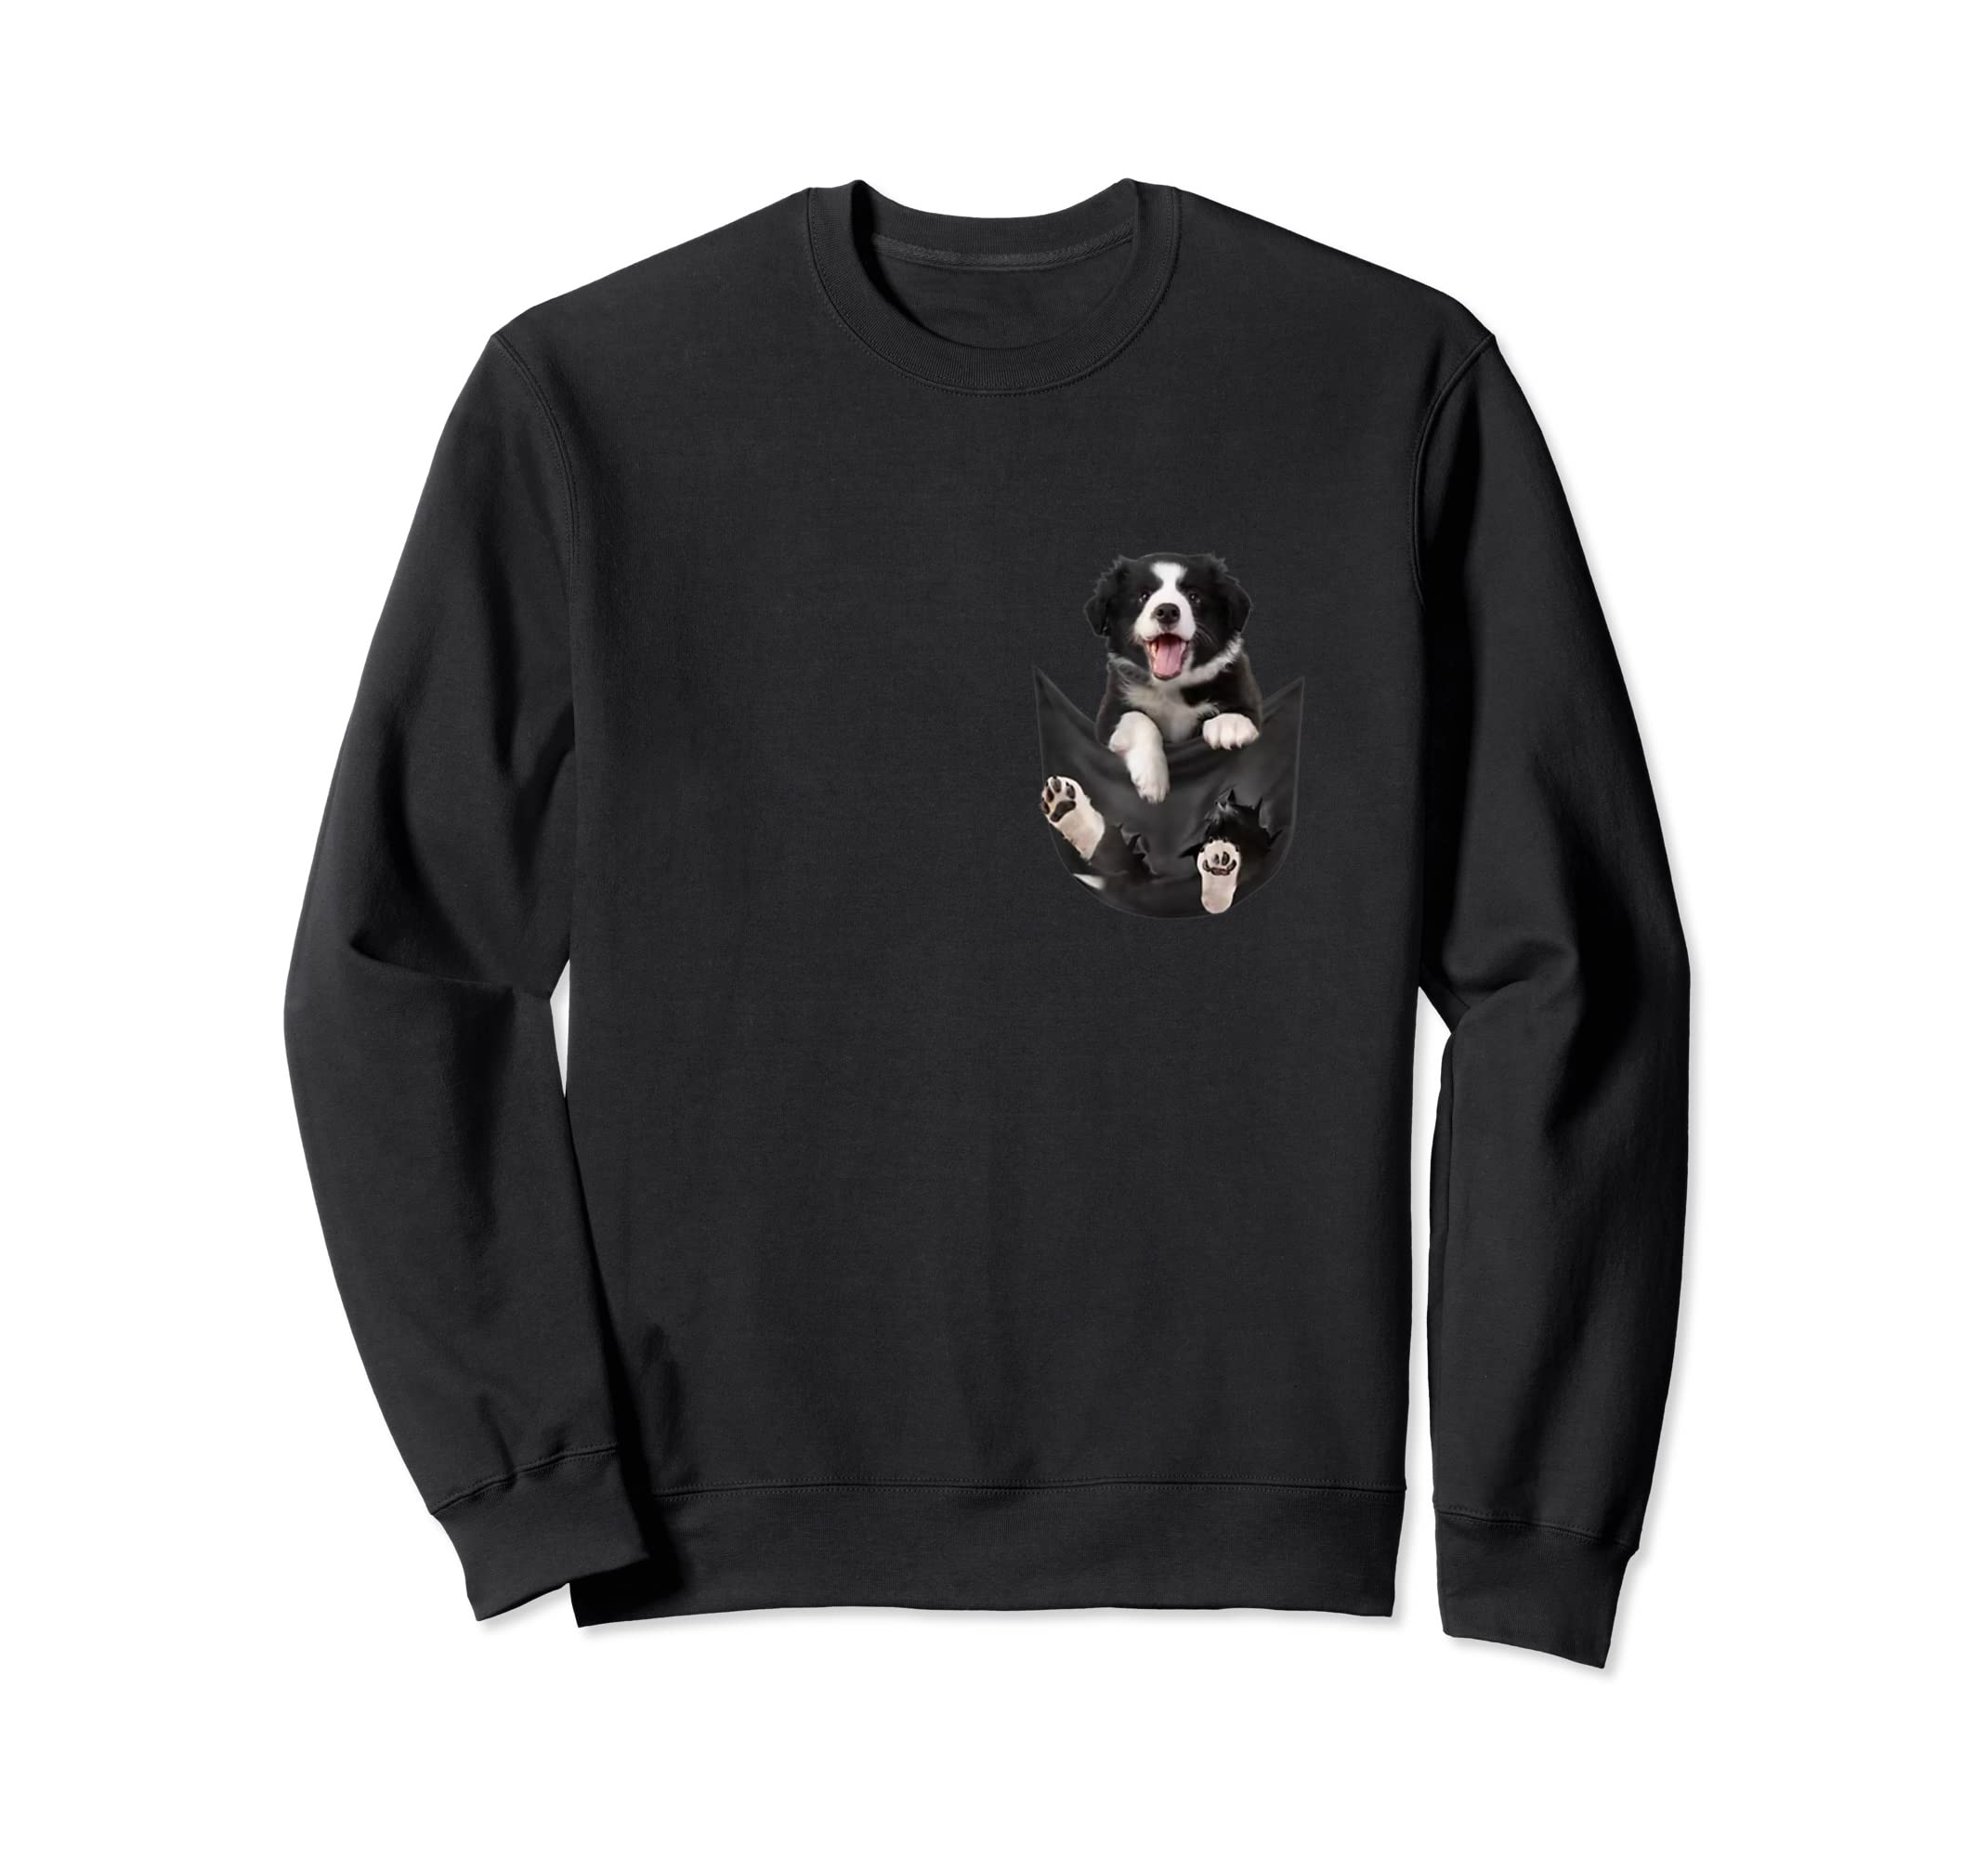 Border Collies Inside In Pocket Dog Lover T shirt Funny Cute-Sweatshirt-Black